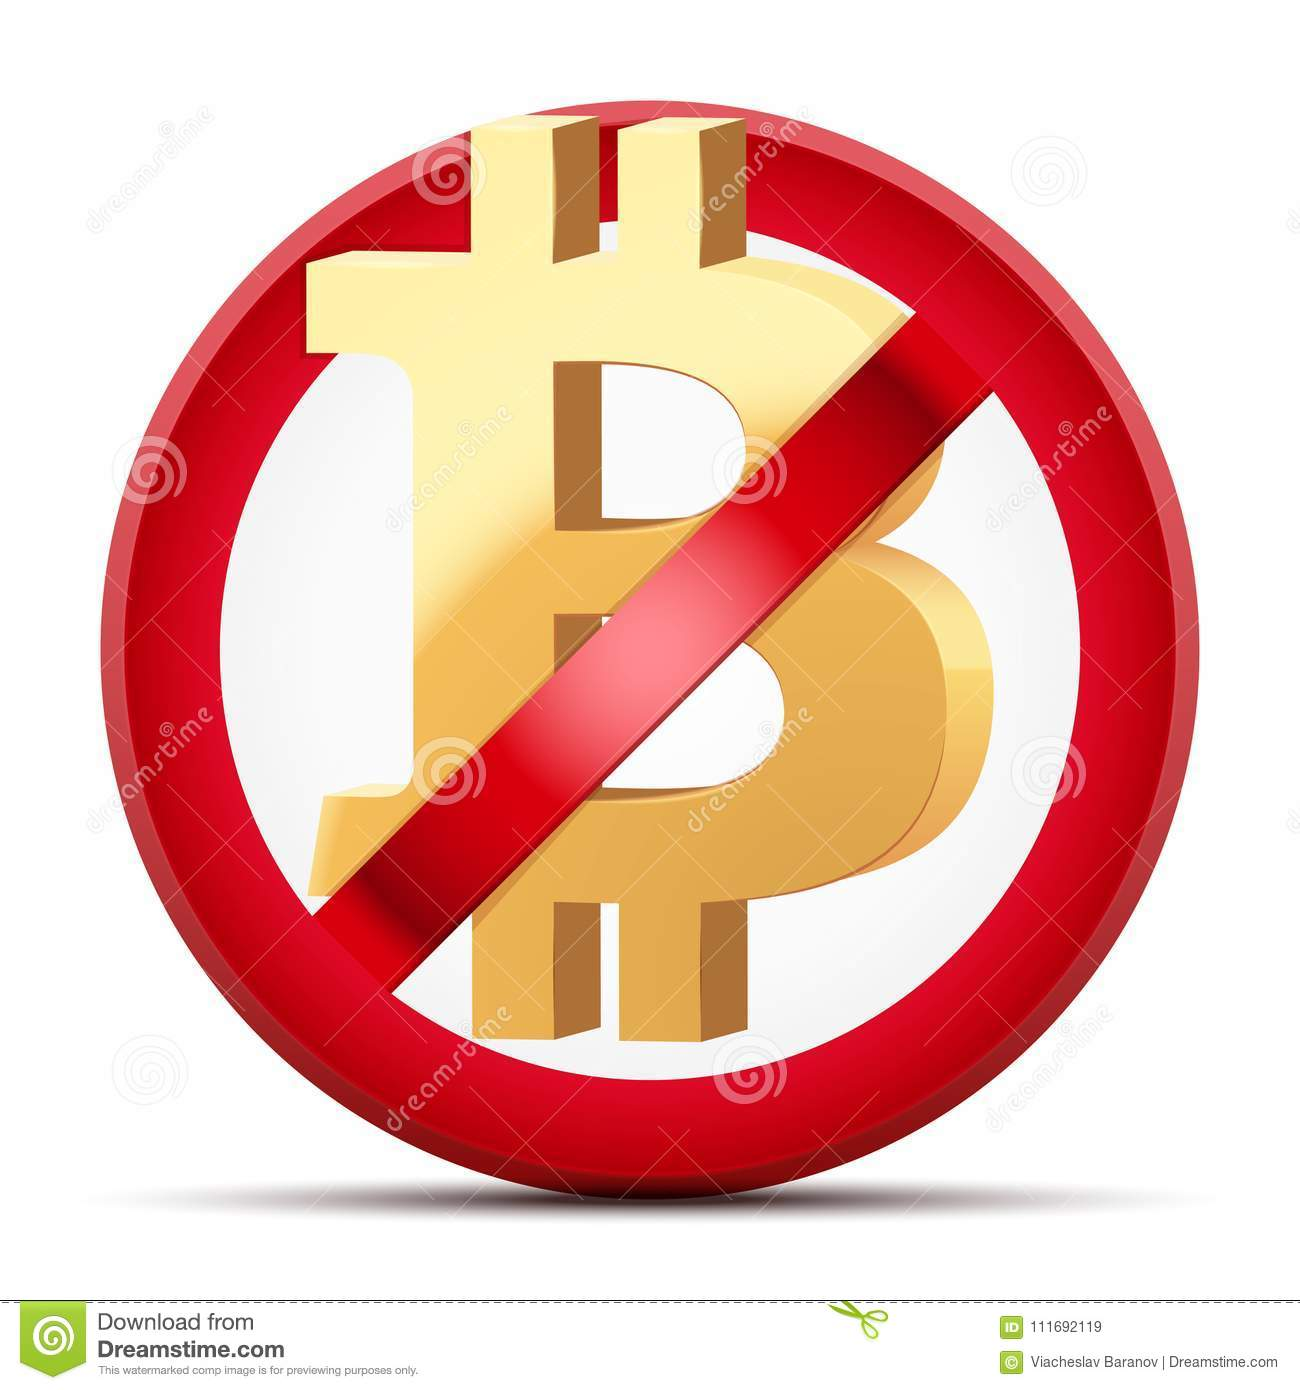 is it possible to ban bitcoin